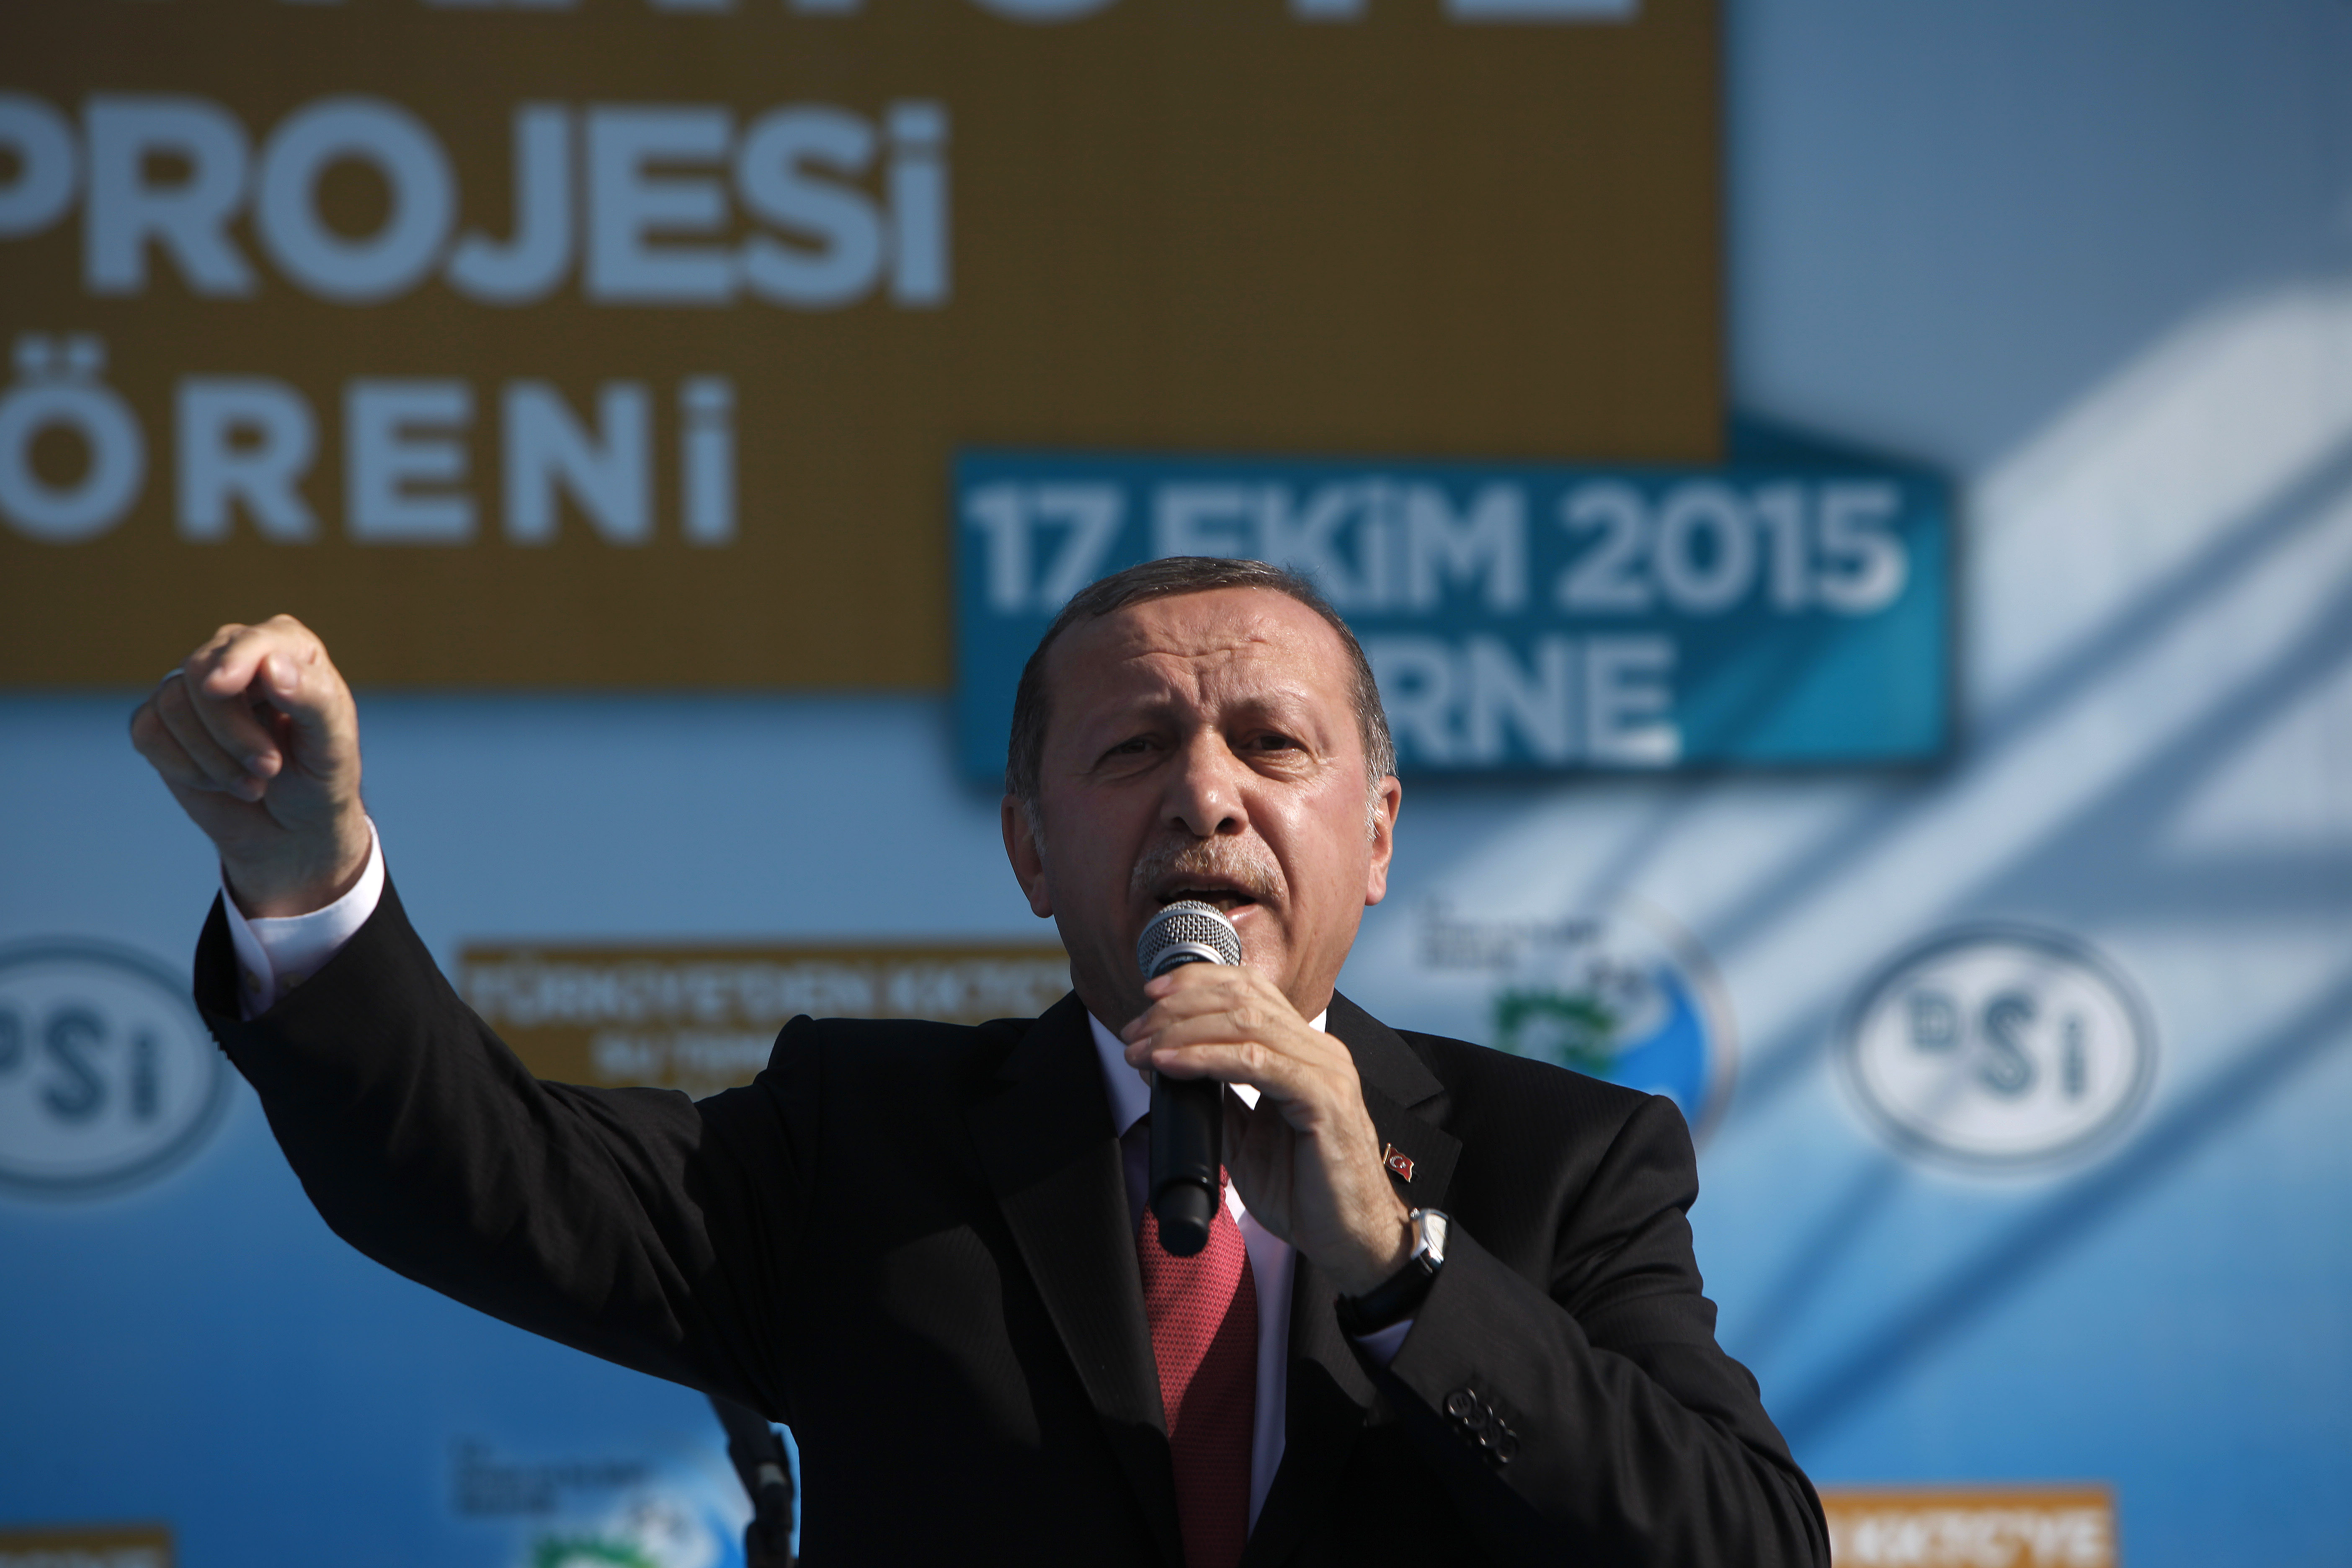 Turkish President Recep Tayyip Erdogan speaks to his supporters during an inauguration for an undersea pipeline to carry fresh water from Turkey to the breakaway Turkish Cypriot north of ethnically split Cyprus in Mirtou village, Oct. 17, 2015.